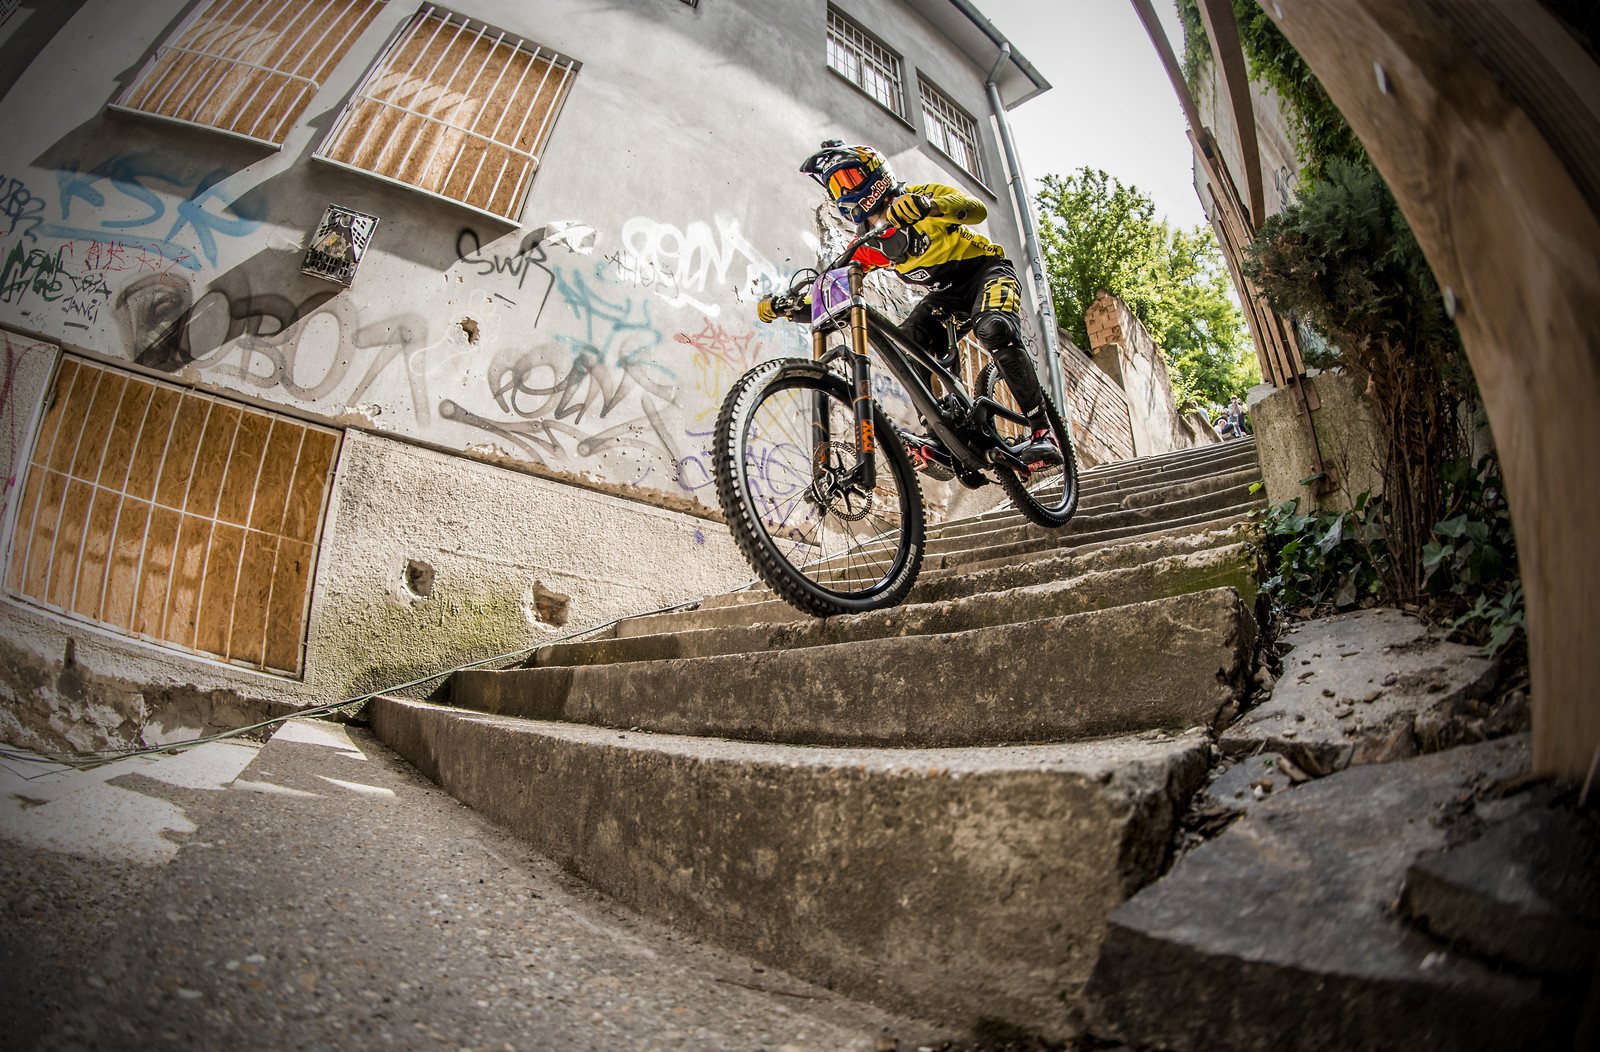 polecat city downhill slovenia - phunkt.com - Mountain Biking Pictures - Vital MTB